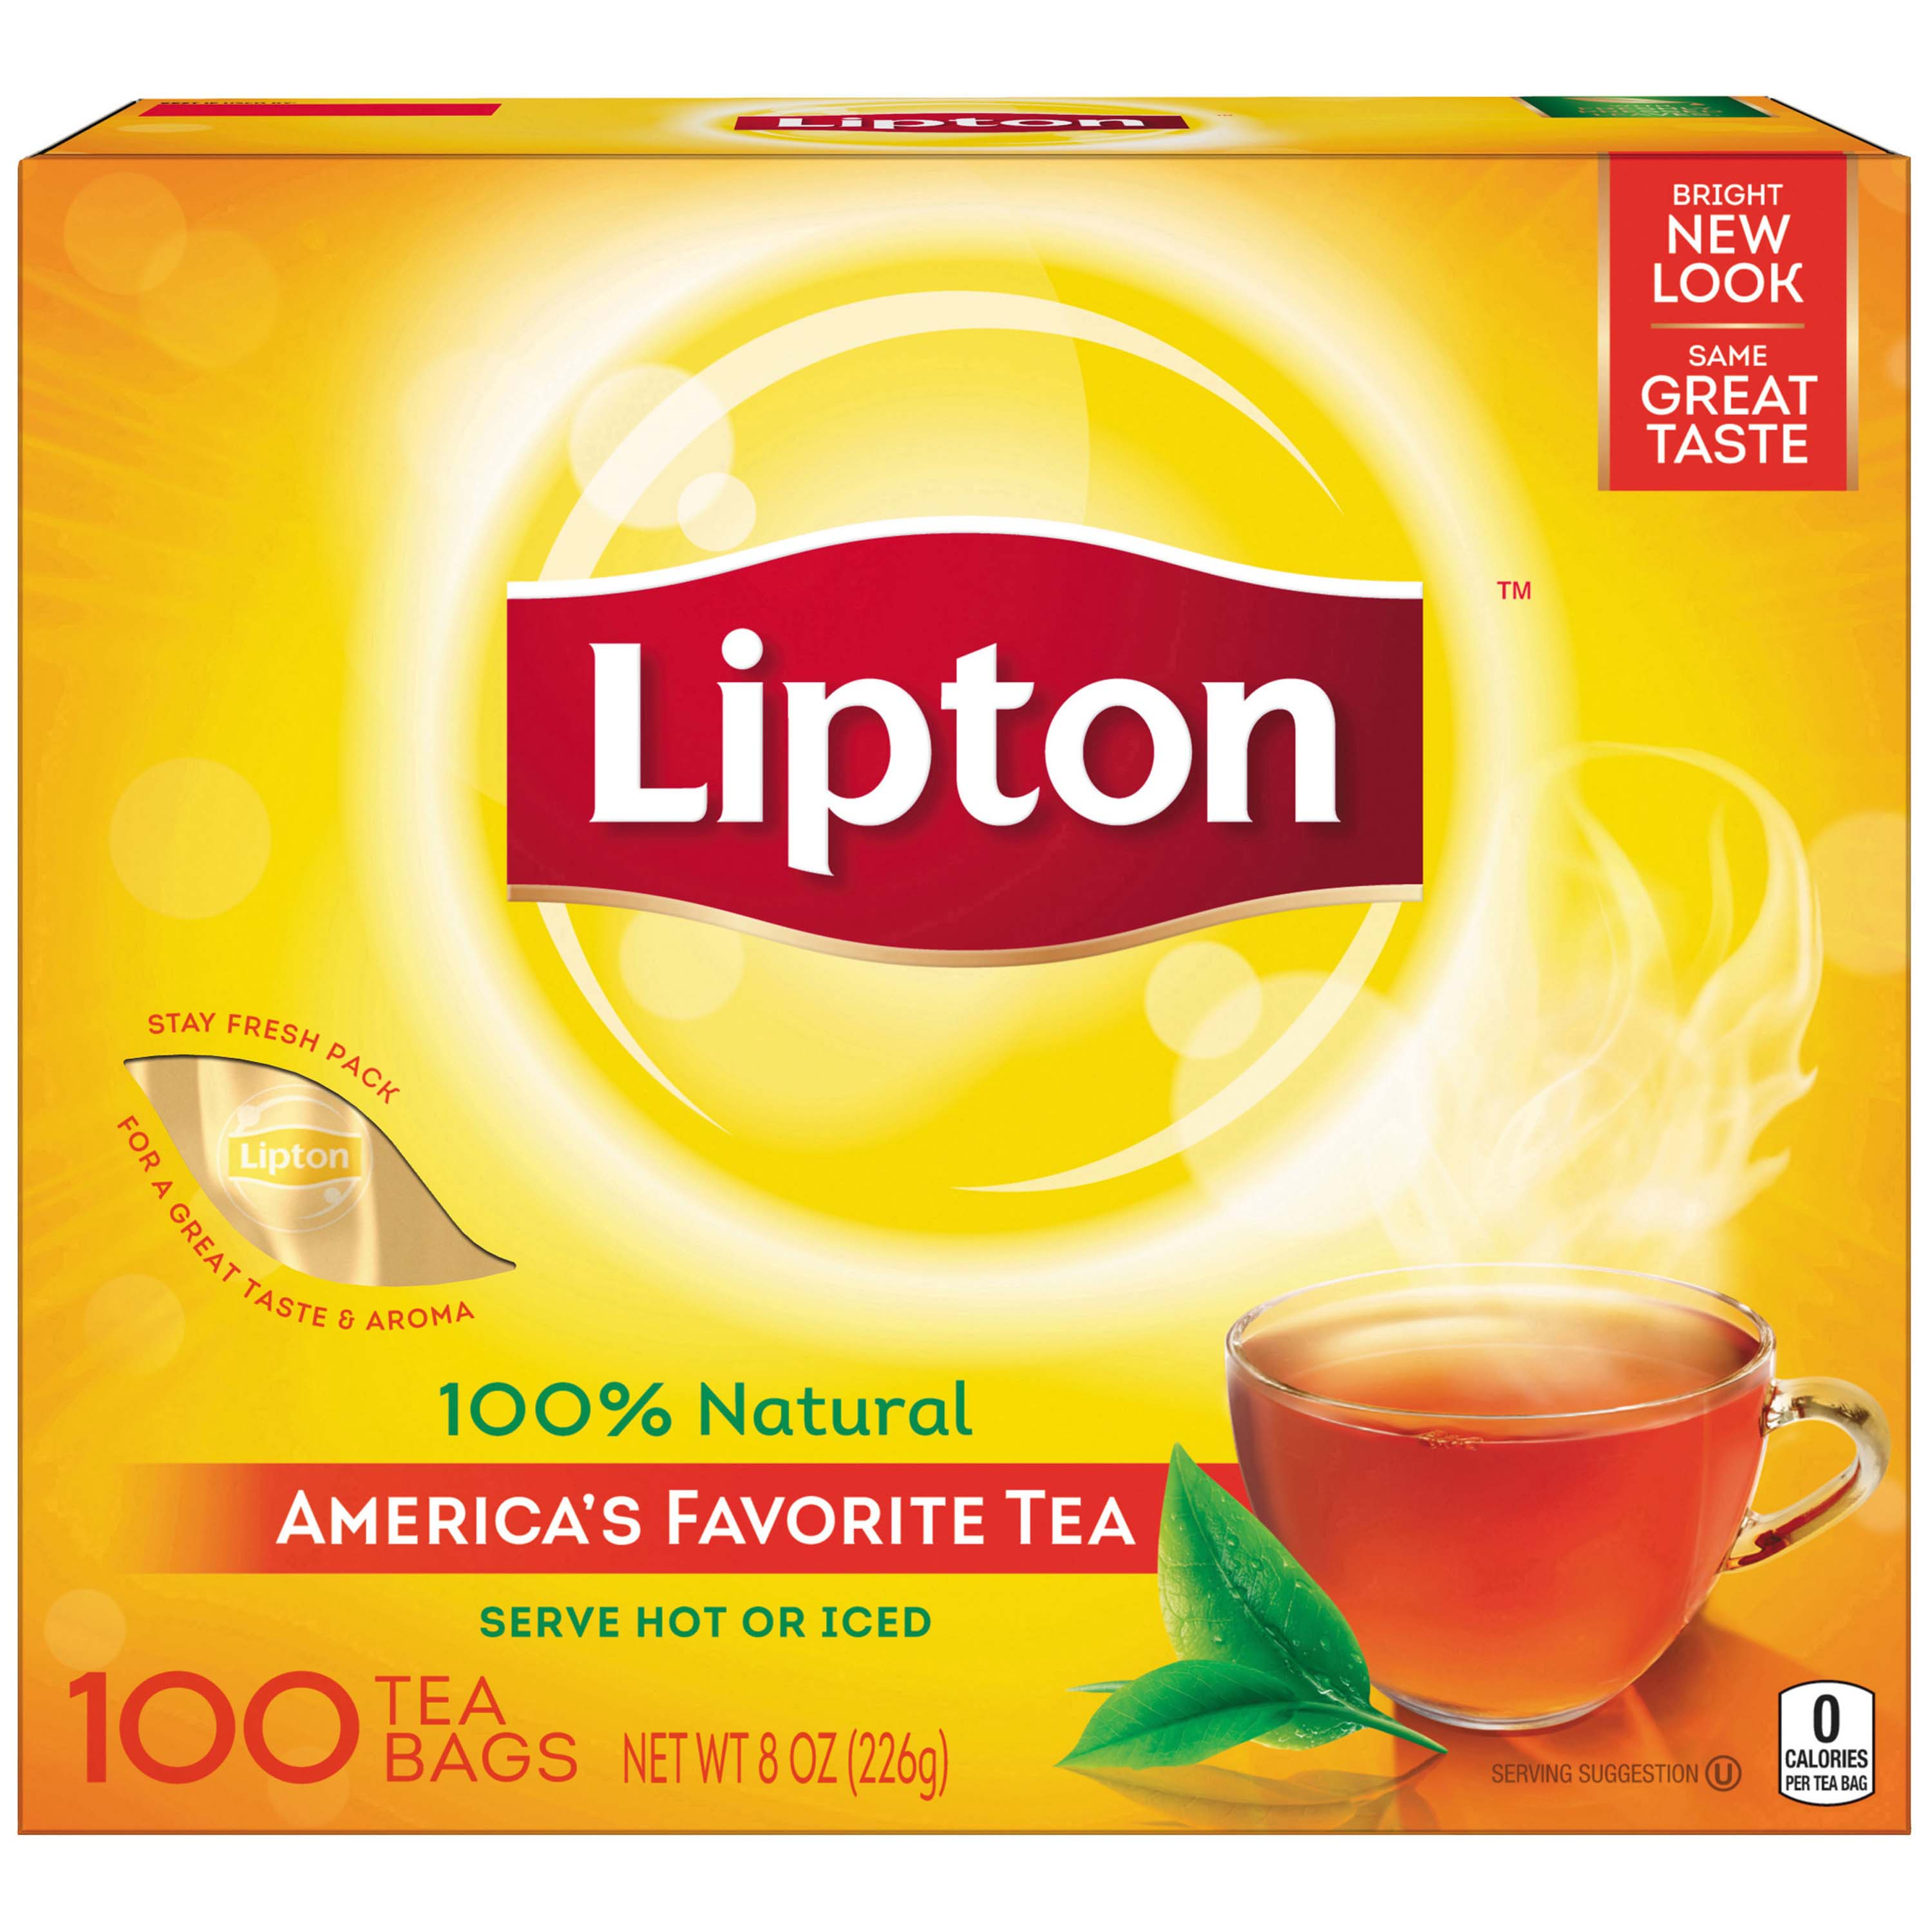 Lipton 100% Natural Tea Black Tea Bags, 100 ct